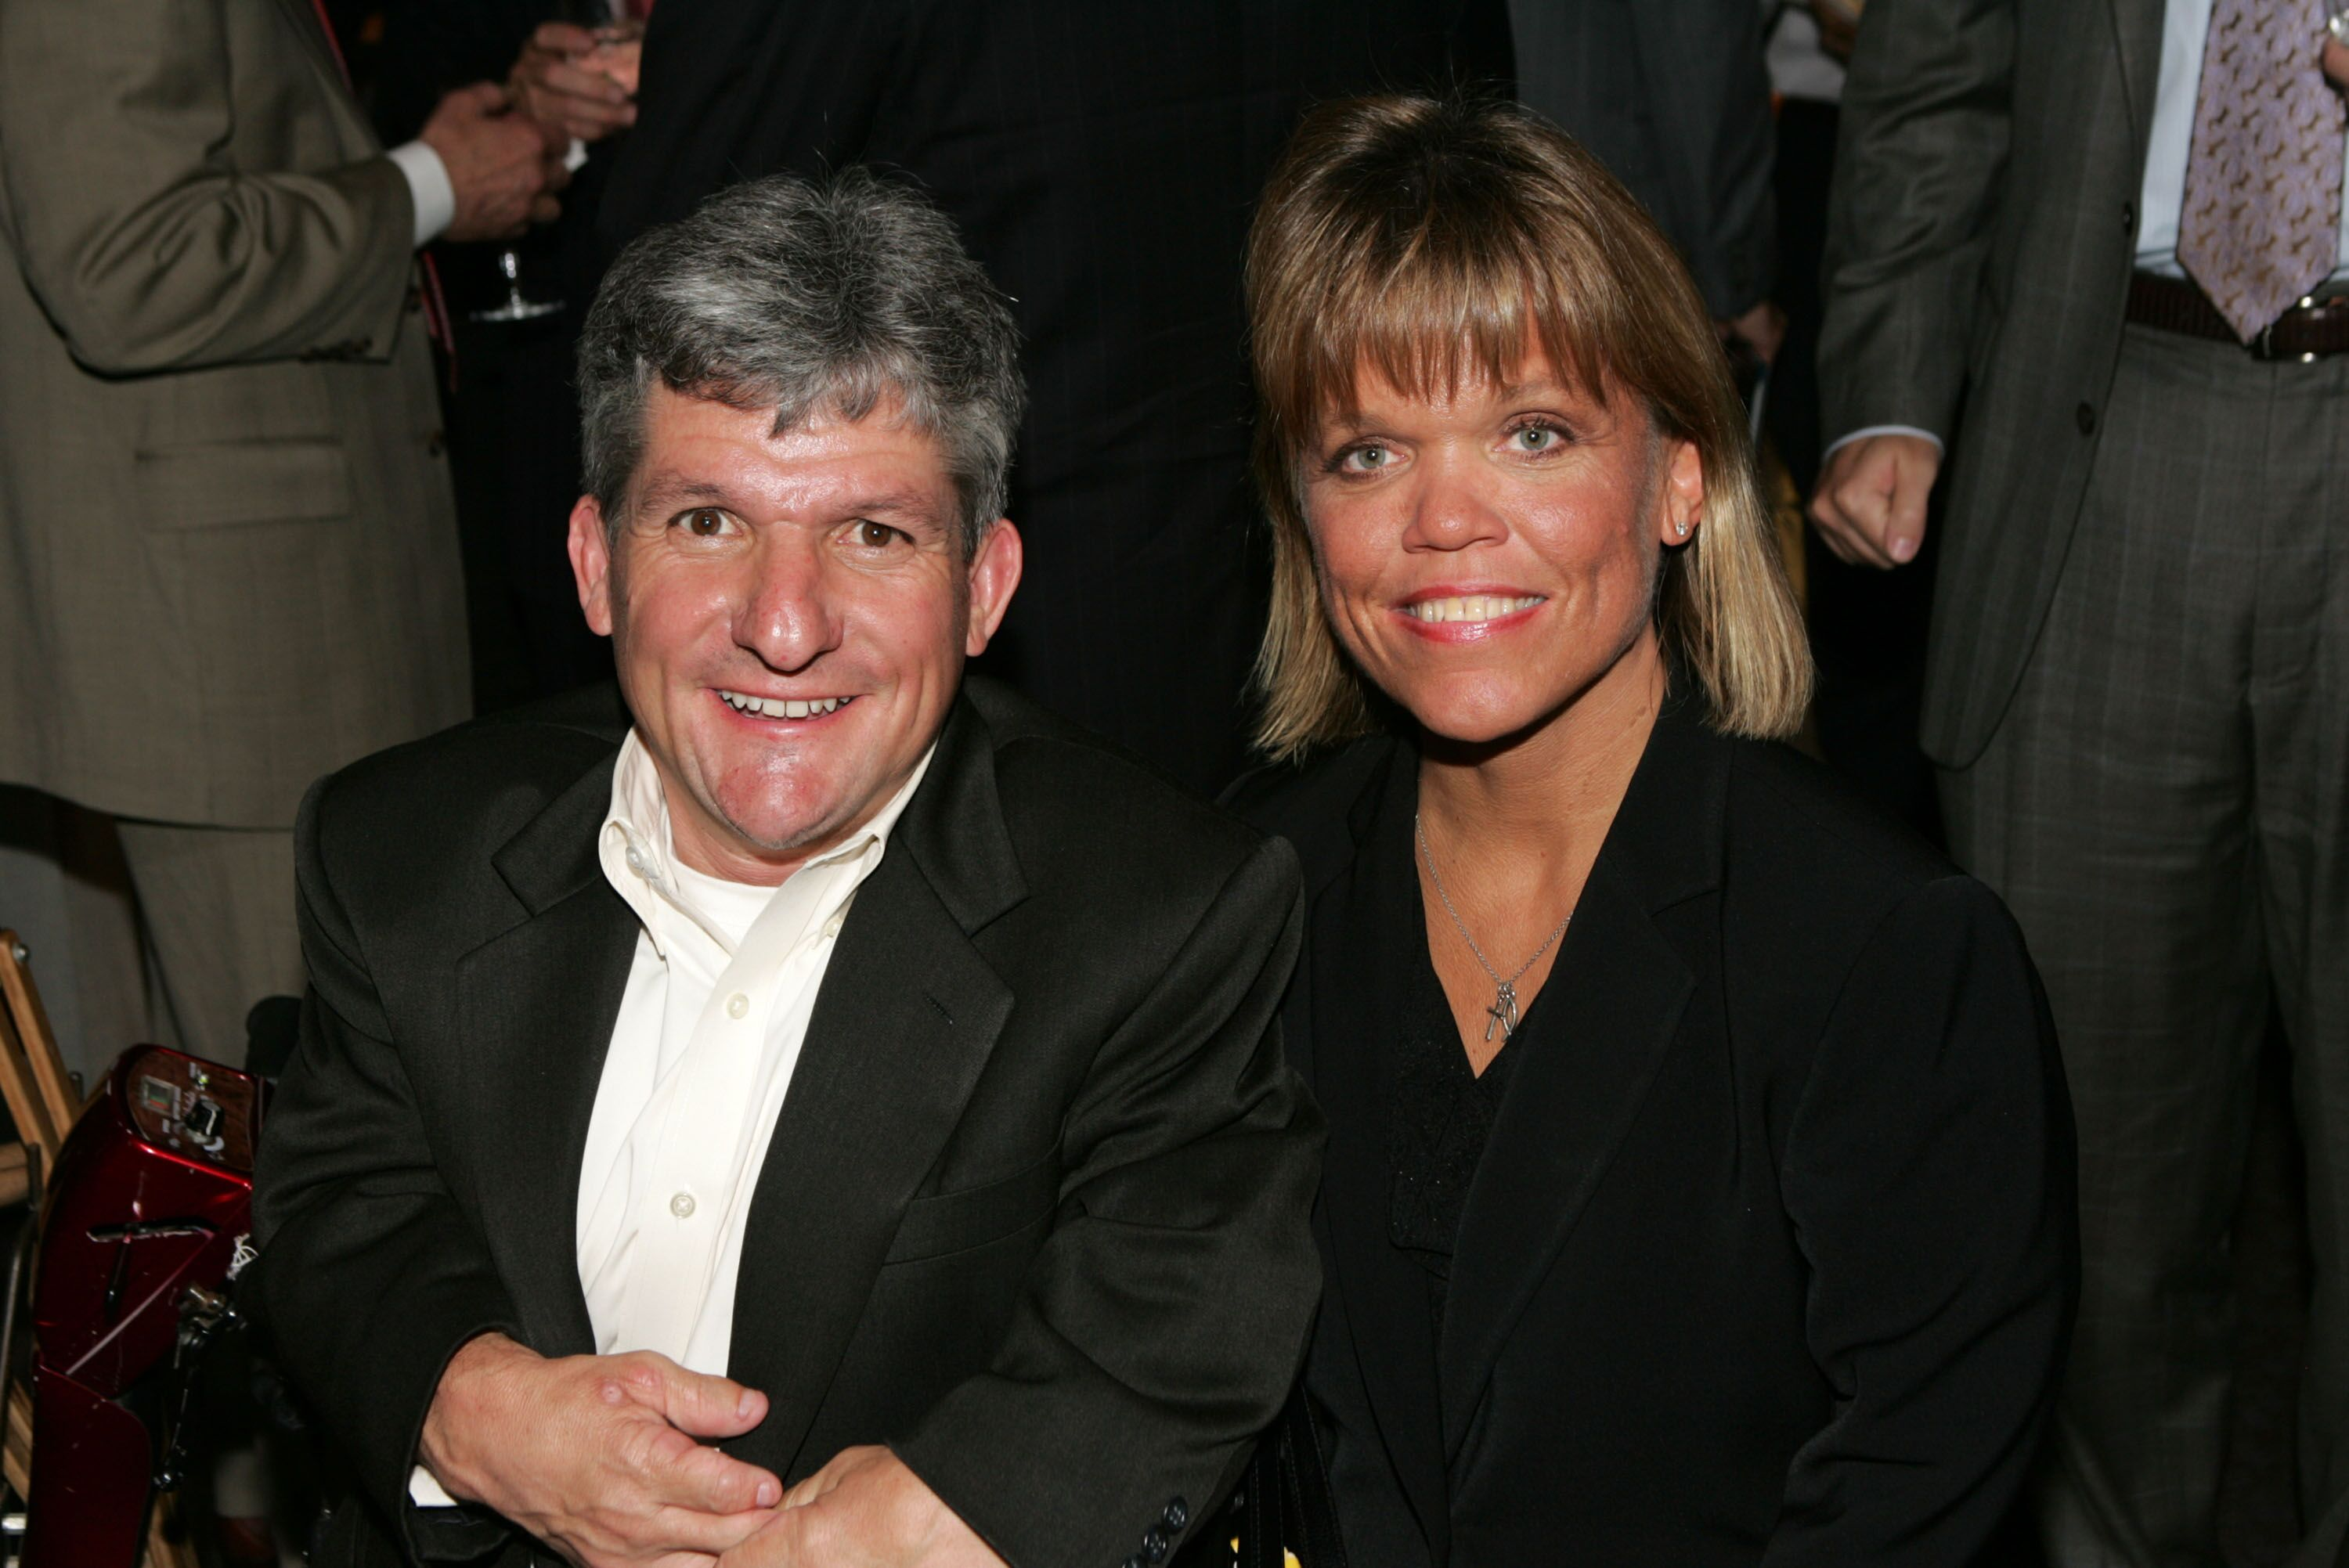 Television personalities Matt and Amy Roloff attend the Discovery Upfront Presentation NY - Talent Images at the Frederick P. Rose Hall on April 23, 2008 in New York City | Source: Getty Images